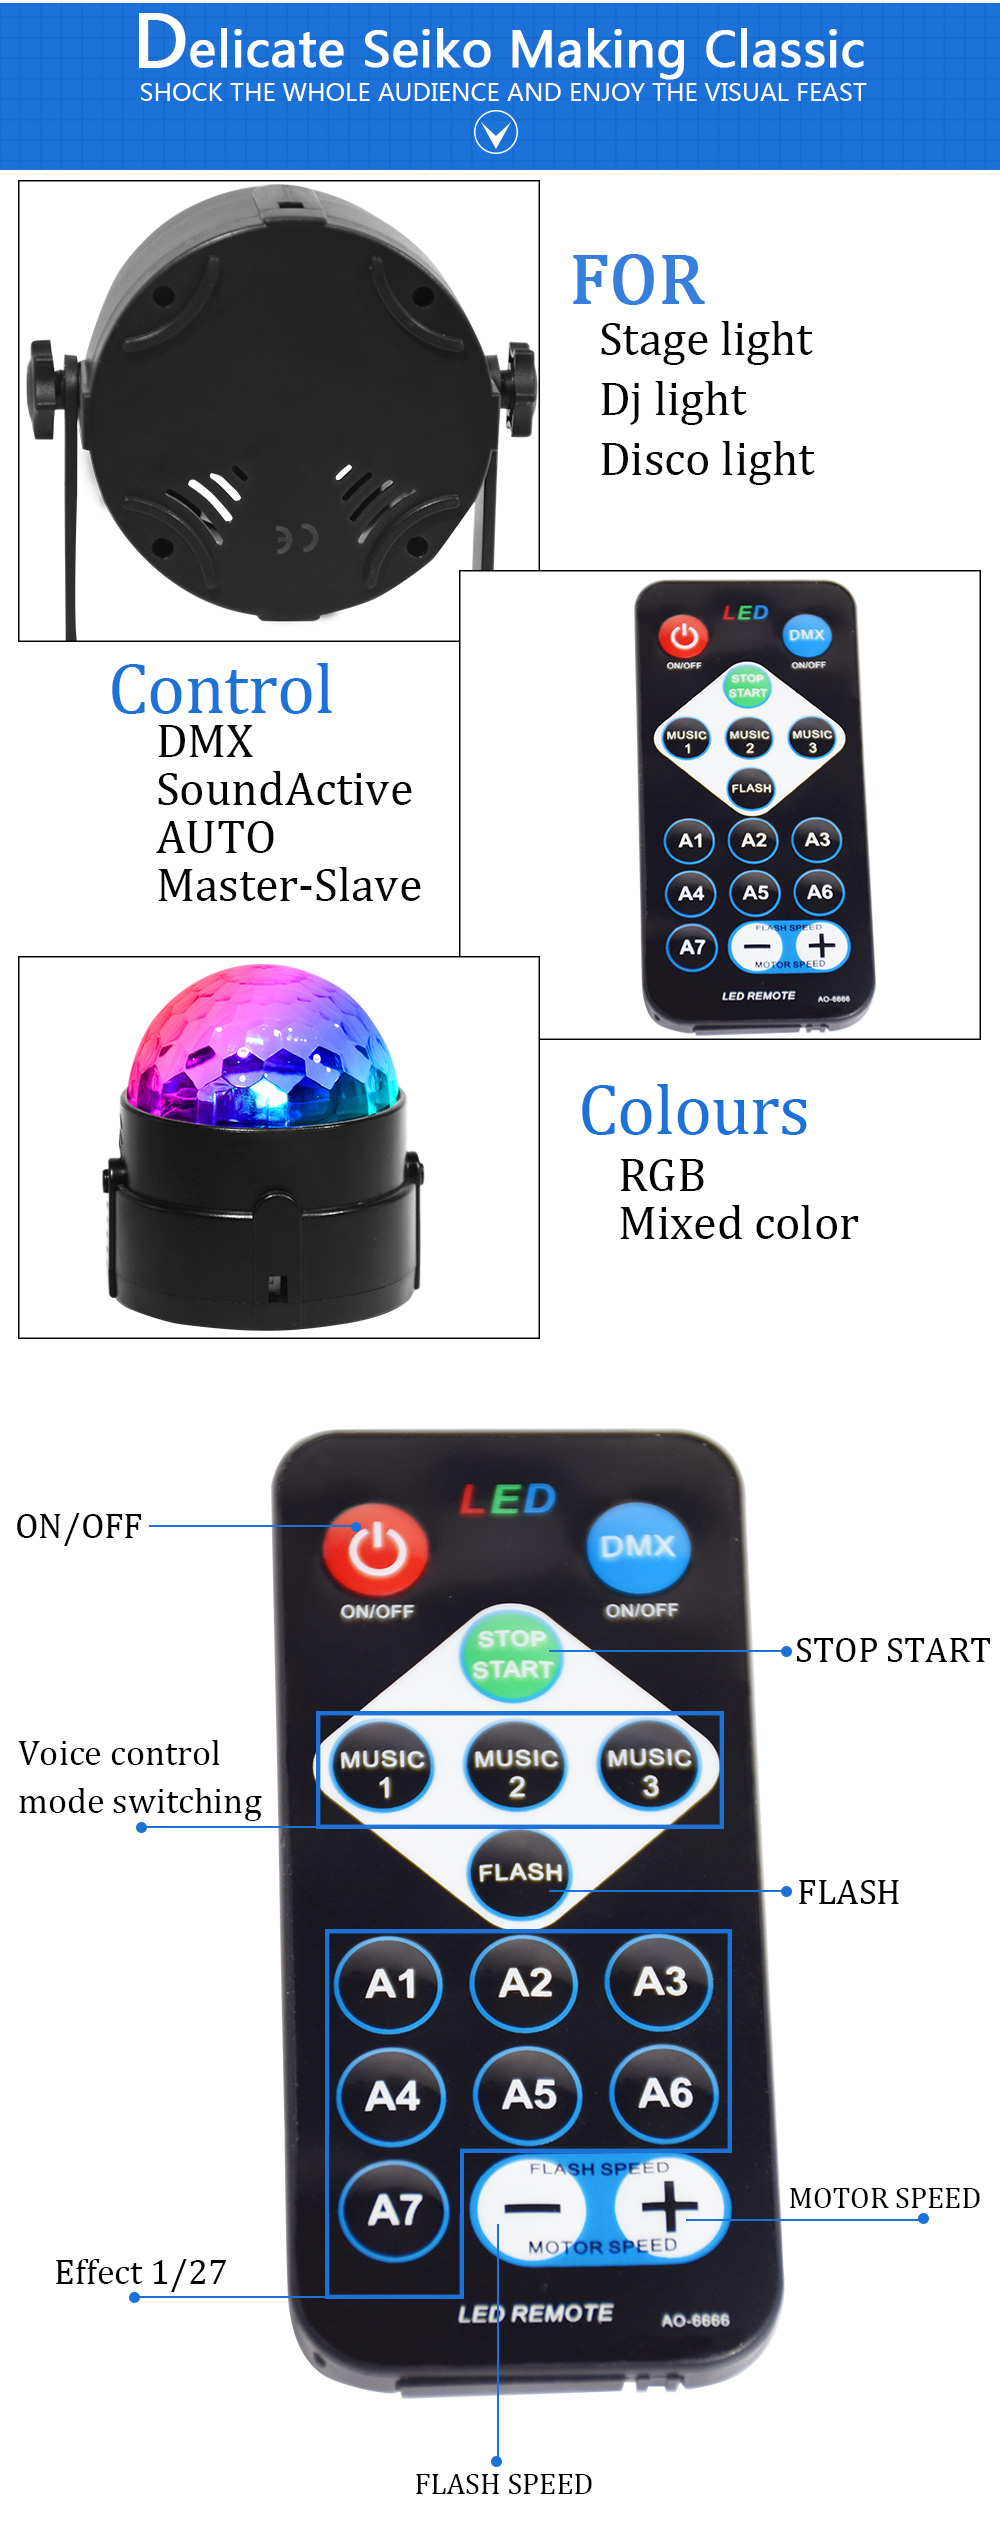 HTB1msugXpT7gK0jSZFpq6yTkpXax - 7 Colors Disco Ball Lumiere 3W Sound Activated Strobe Led RGB Stage Lighting effect Lamp Laser Christmas Dj KTV Light Party Show